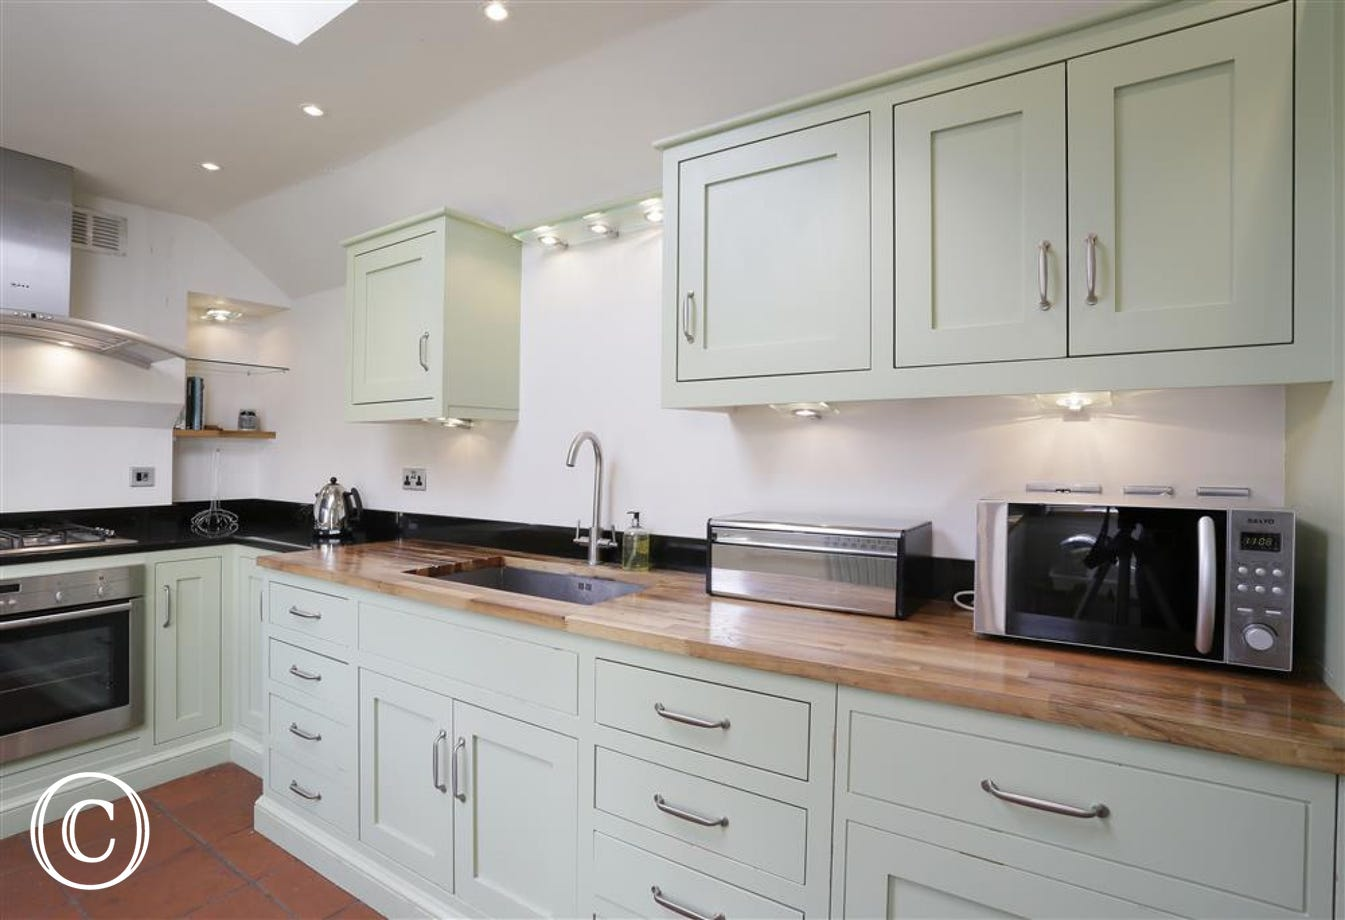 This generous kitchen has plenty of storage space and houses all the essentials one will need for a self-cater stay